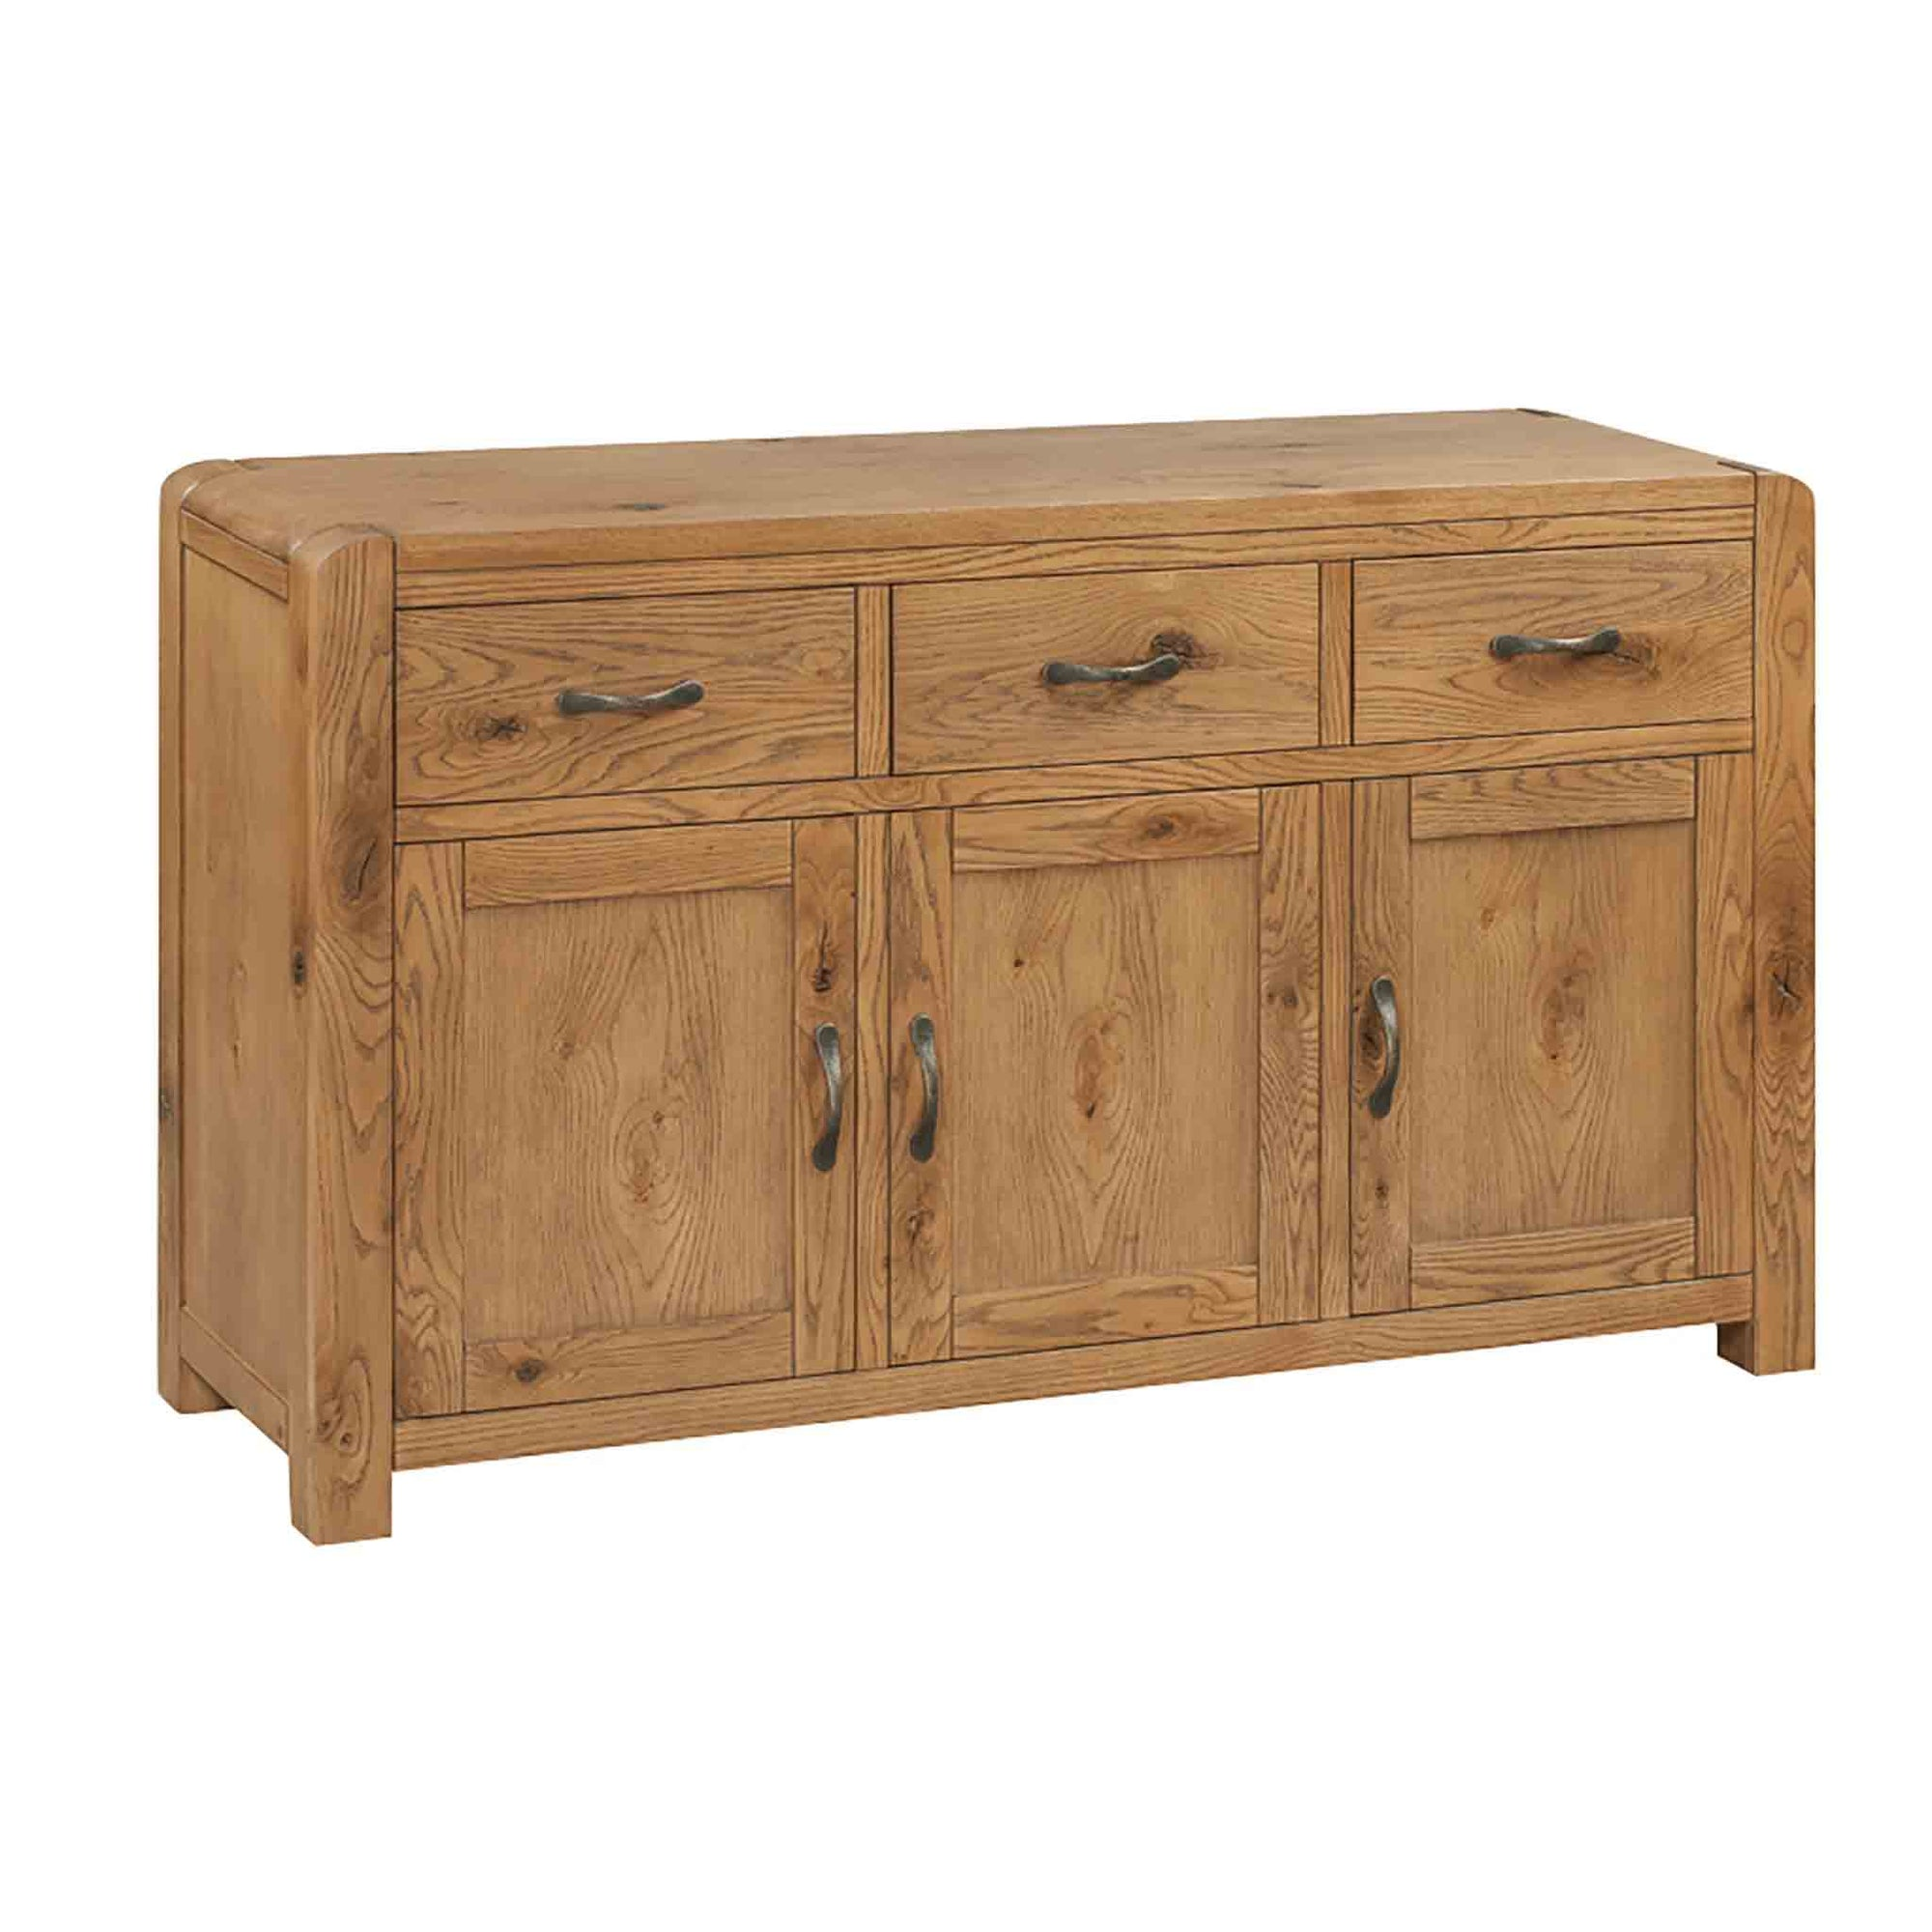 The Capri Oak Chunky Rustic Large Sideboard Cabinet from Roseland Furniture